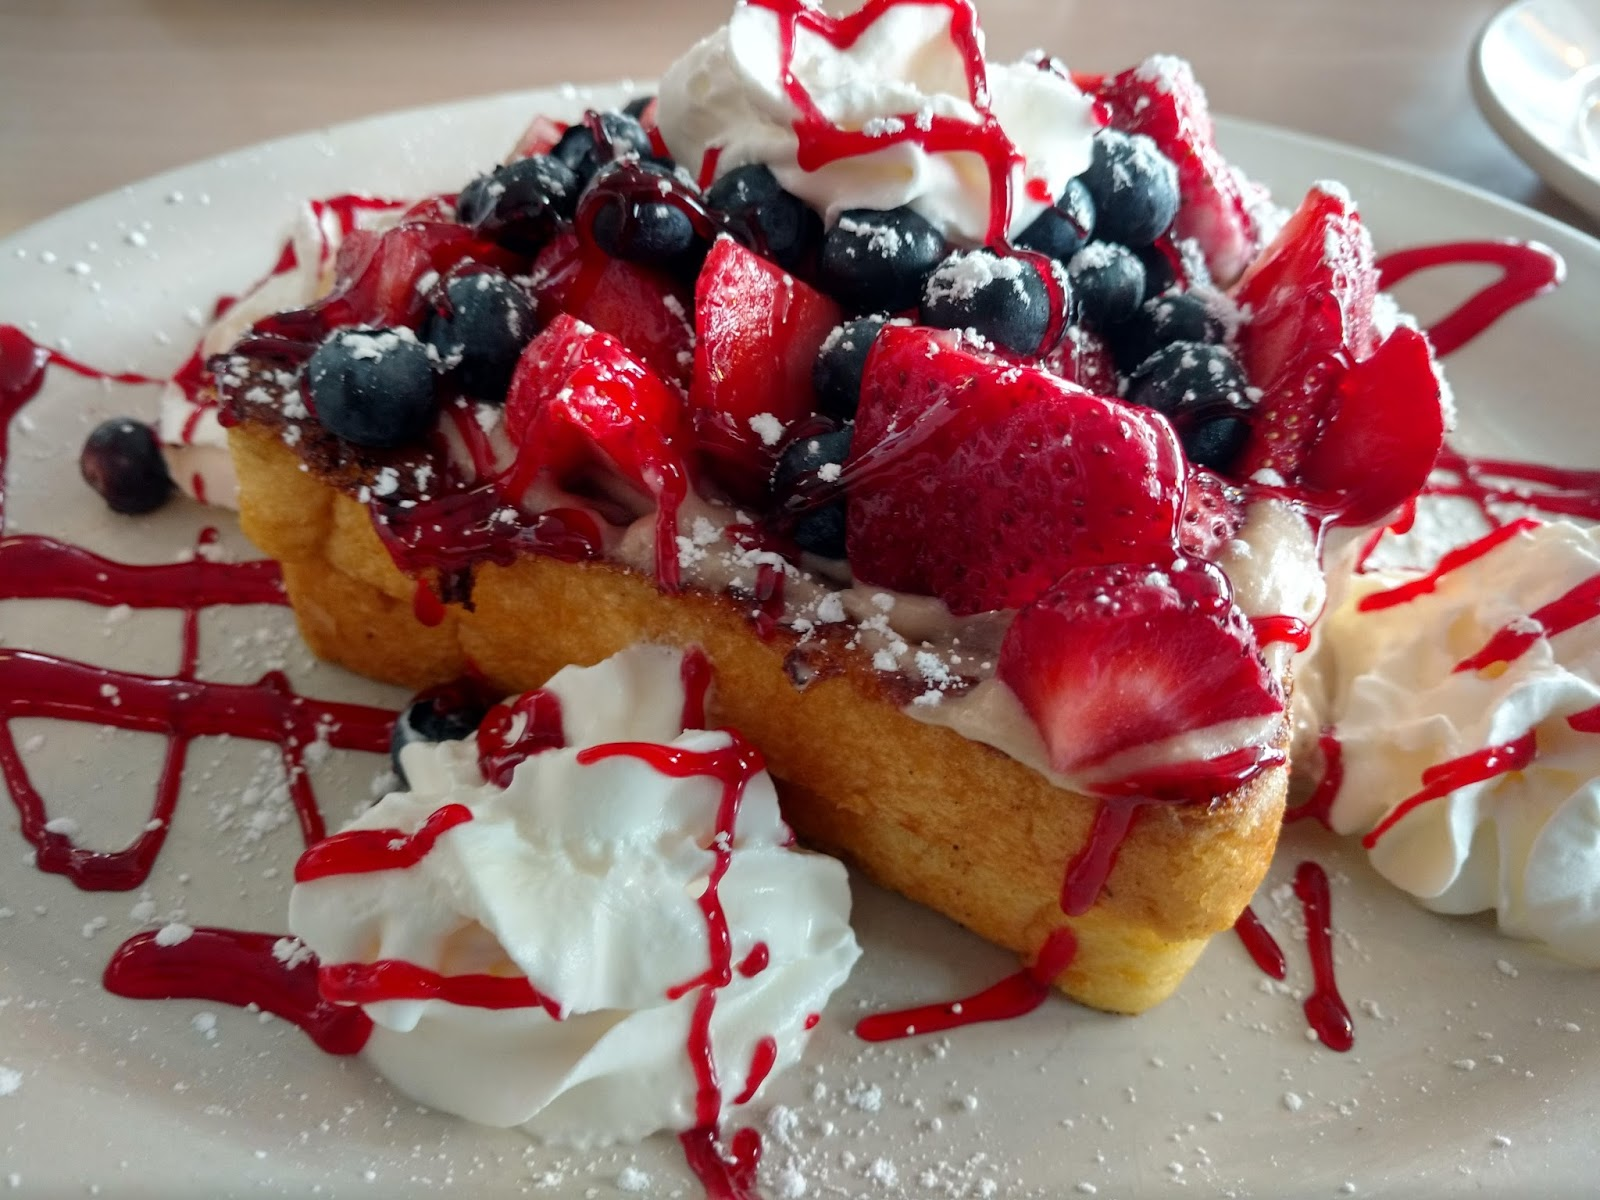 Gina's Very Berry Stuffed French Toast